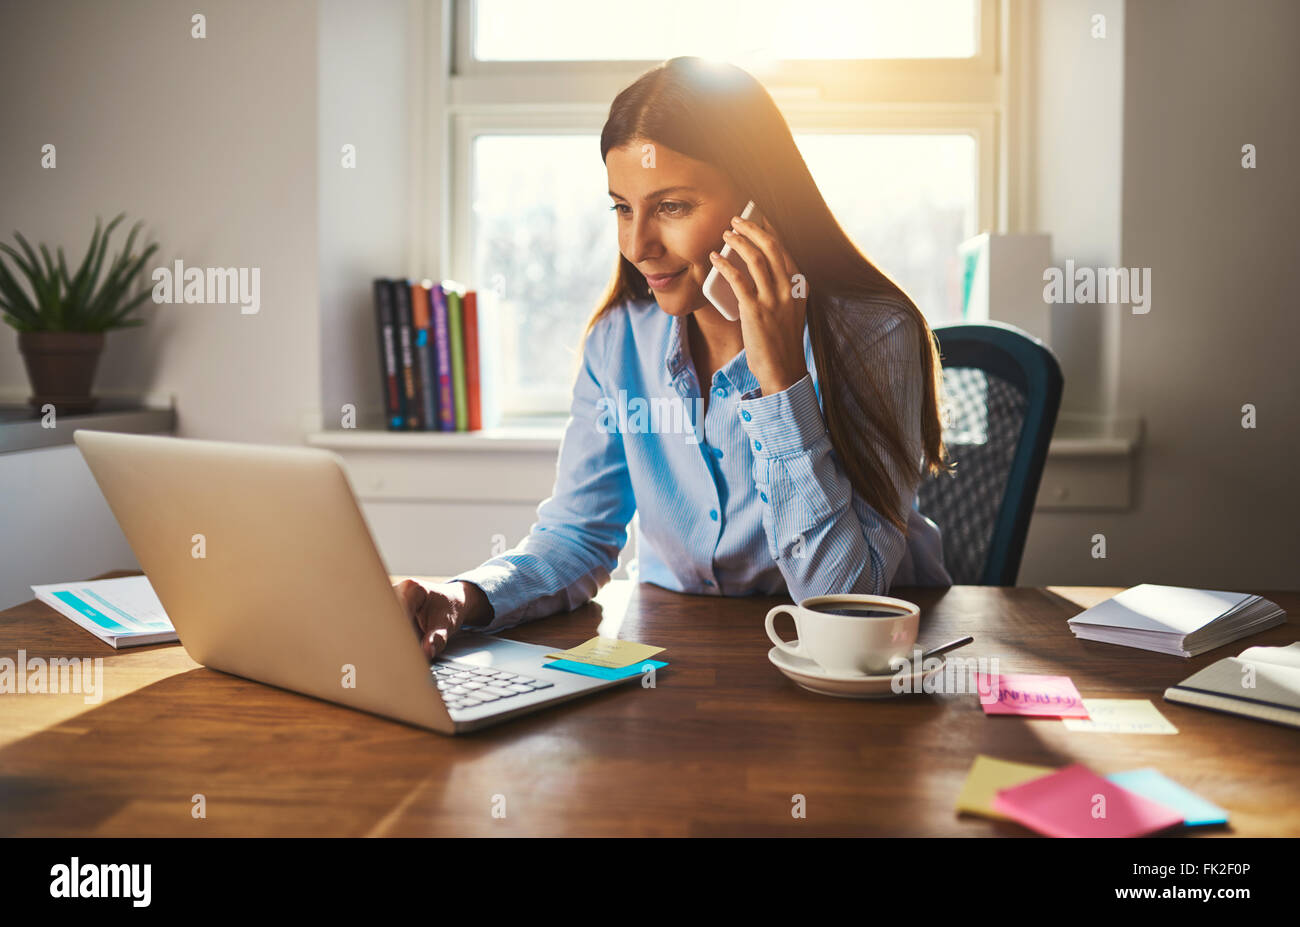 Woman working on laptop at office while talking on phone, backlit warm light - Stock Image